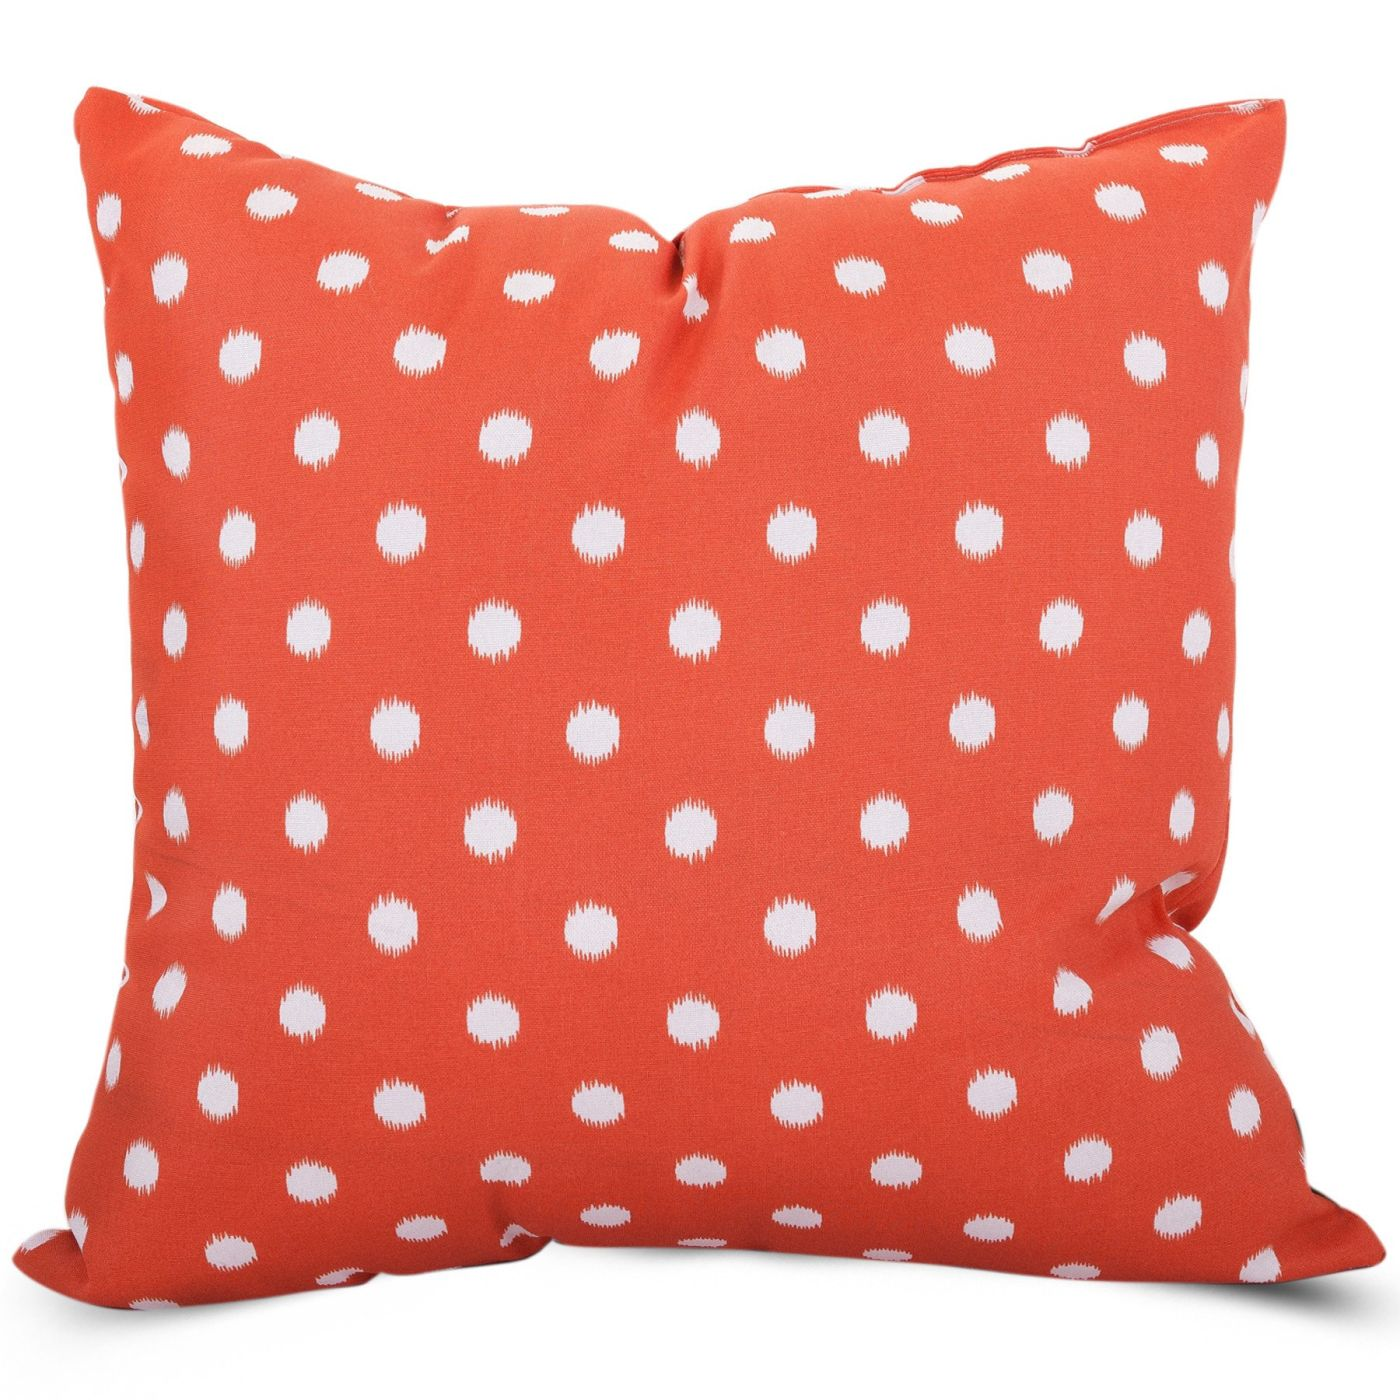 Majestic Home Orange Ikat Dot Extra Large Pillow 85907220972. Only $47.60 at Contemporary ...